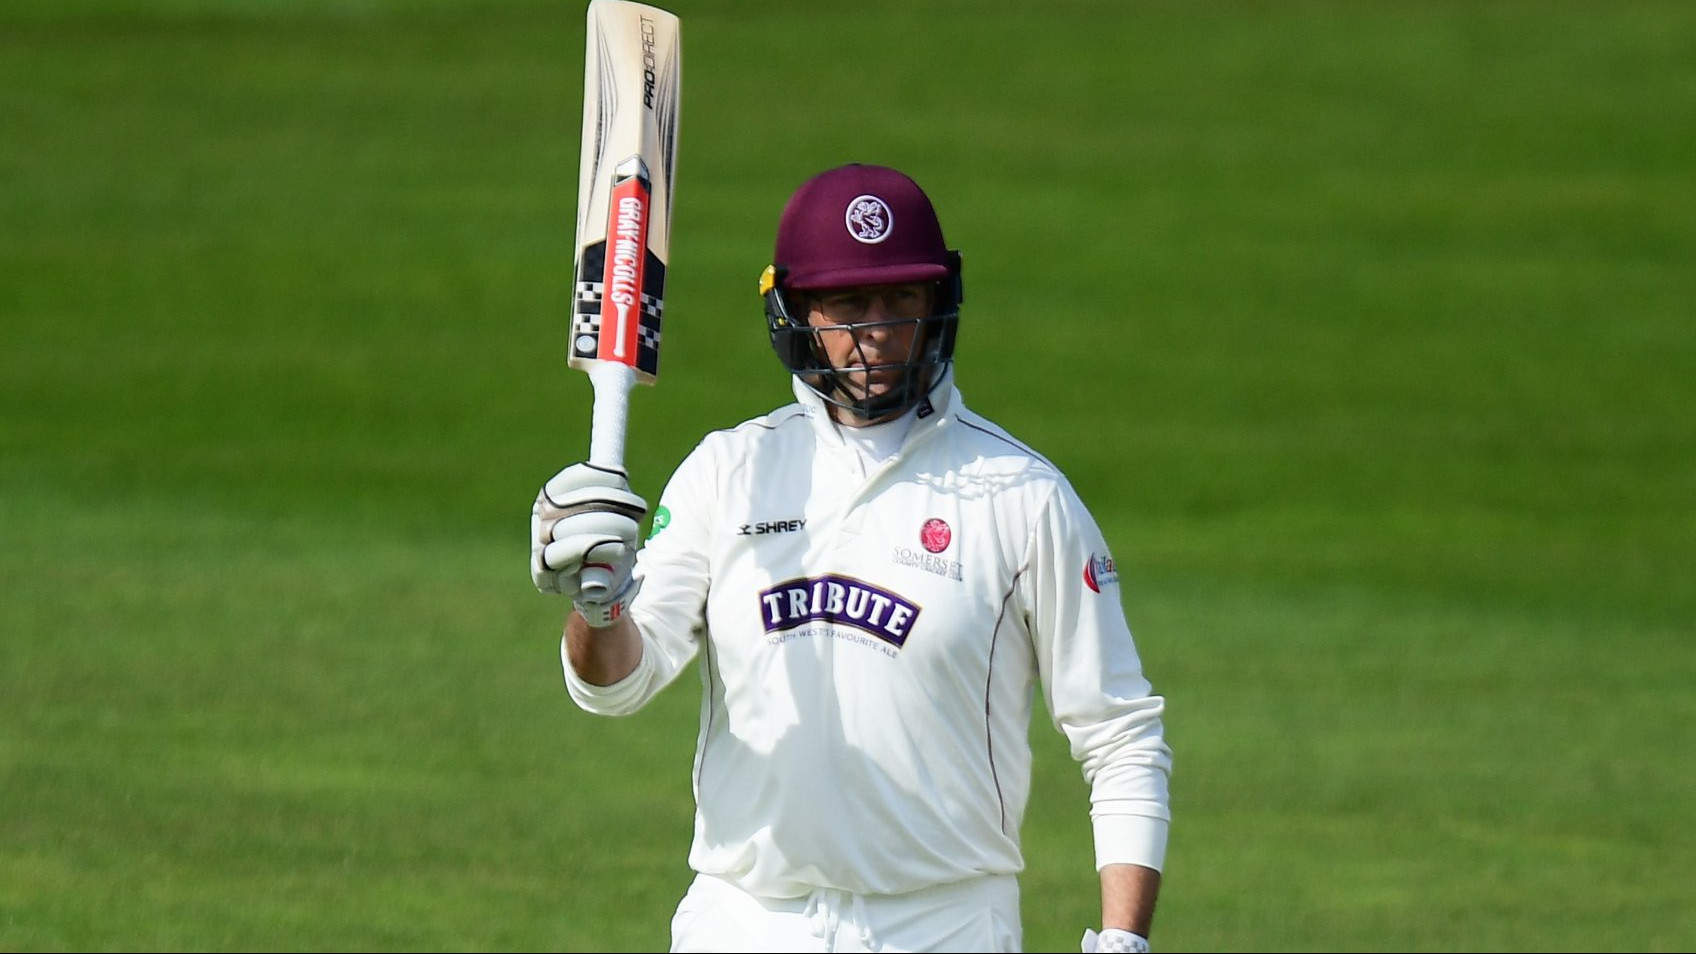 Marcus Trescothick to stay at Somerset until 2019